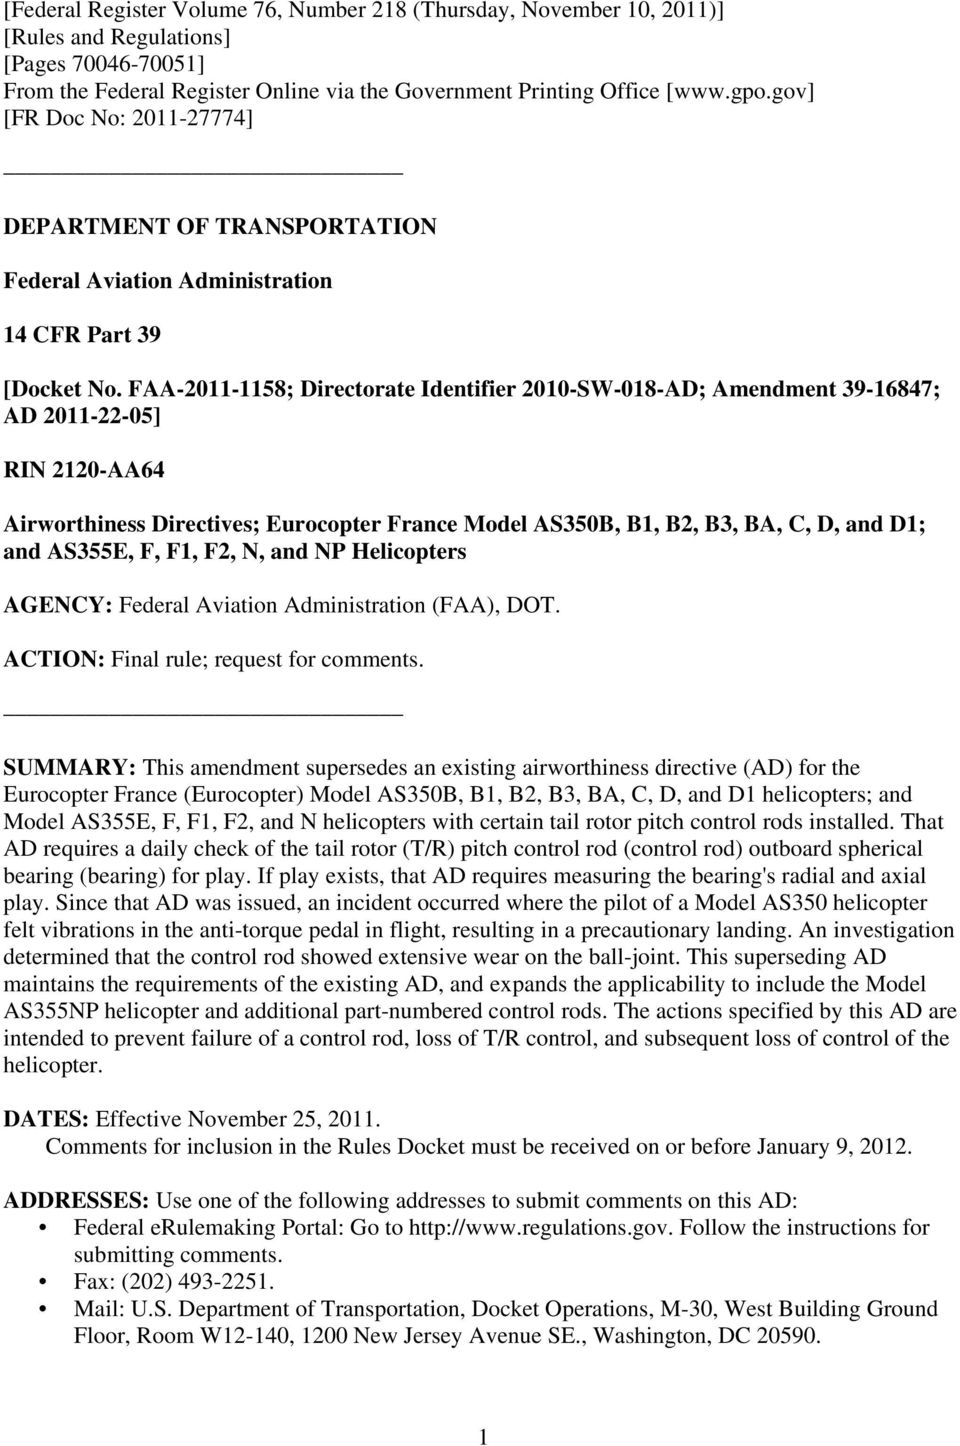 FAA-2011-1158; Directorate Identifier 2010-SW-018-AD; Amendment 39-16847; AD 2011-22-05] RIN 2120-AA64 Airworthiness Directives; Eurocopter France Model AS350B, B1, B2, B3, BA, C, D, and D1; and